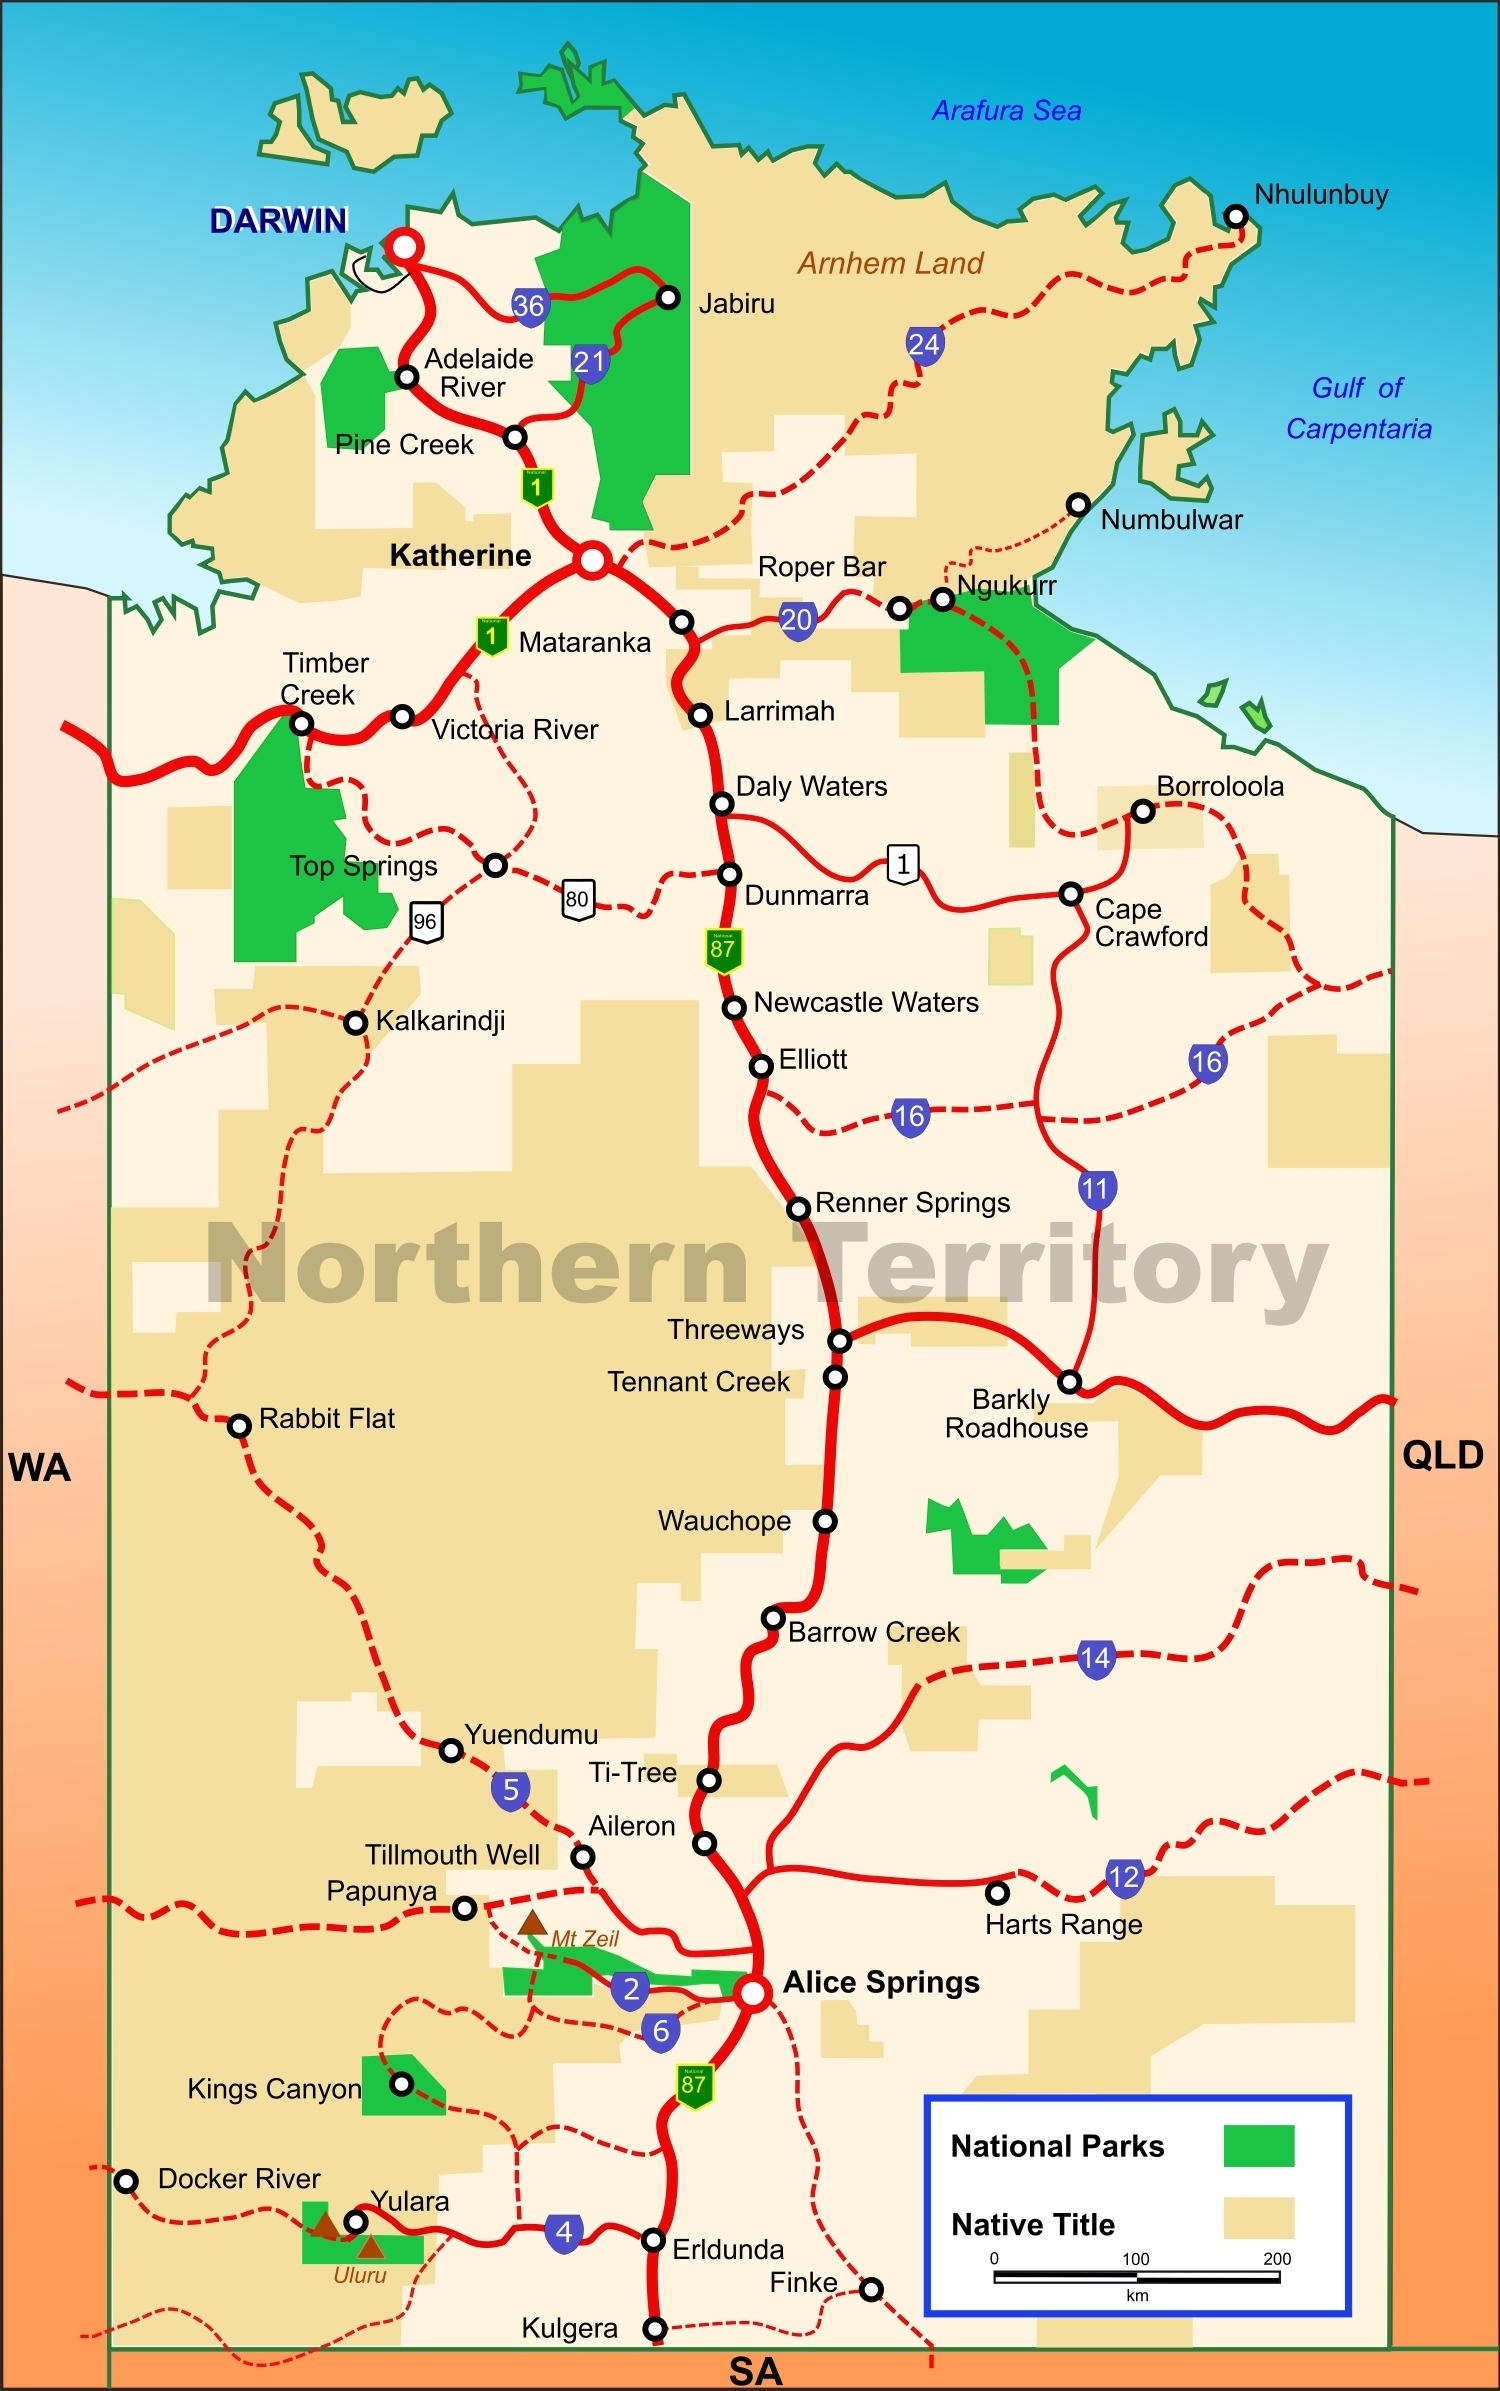 Northern Territory National Parks Map regarding Northern Territory Map Australia